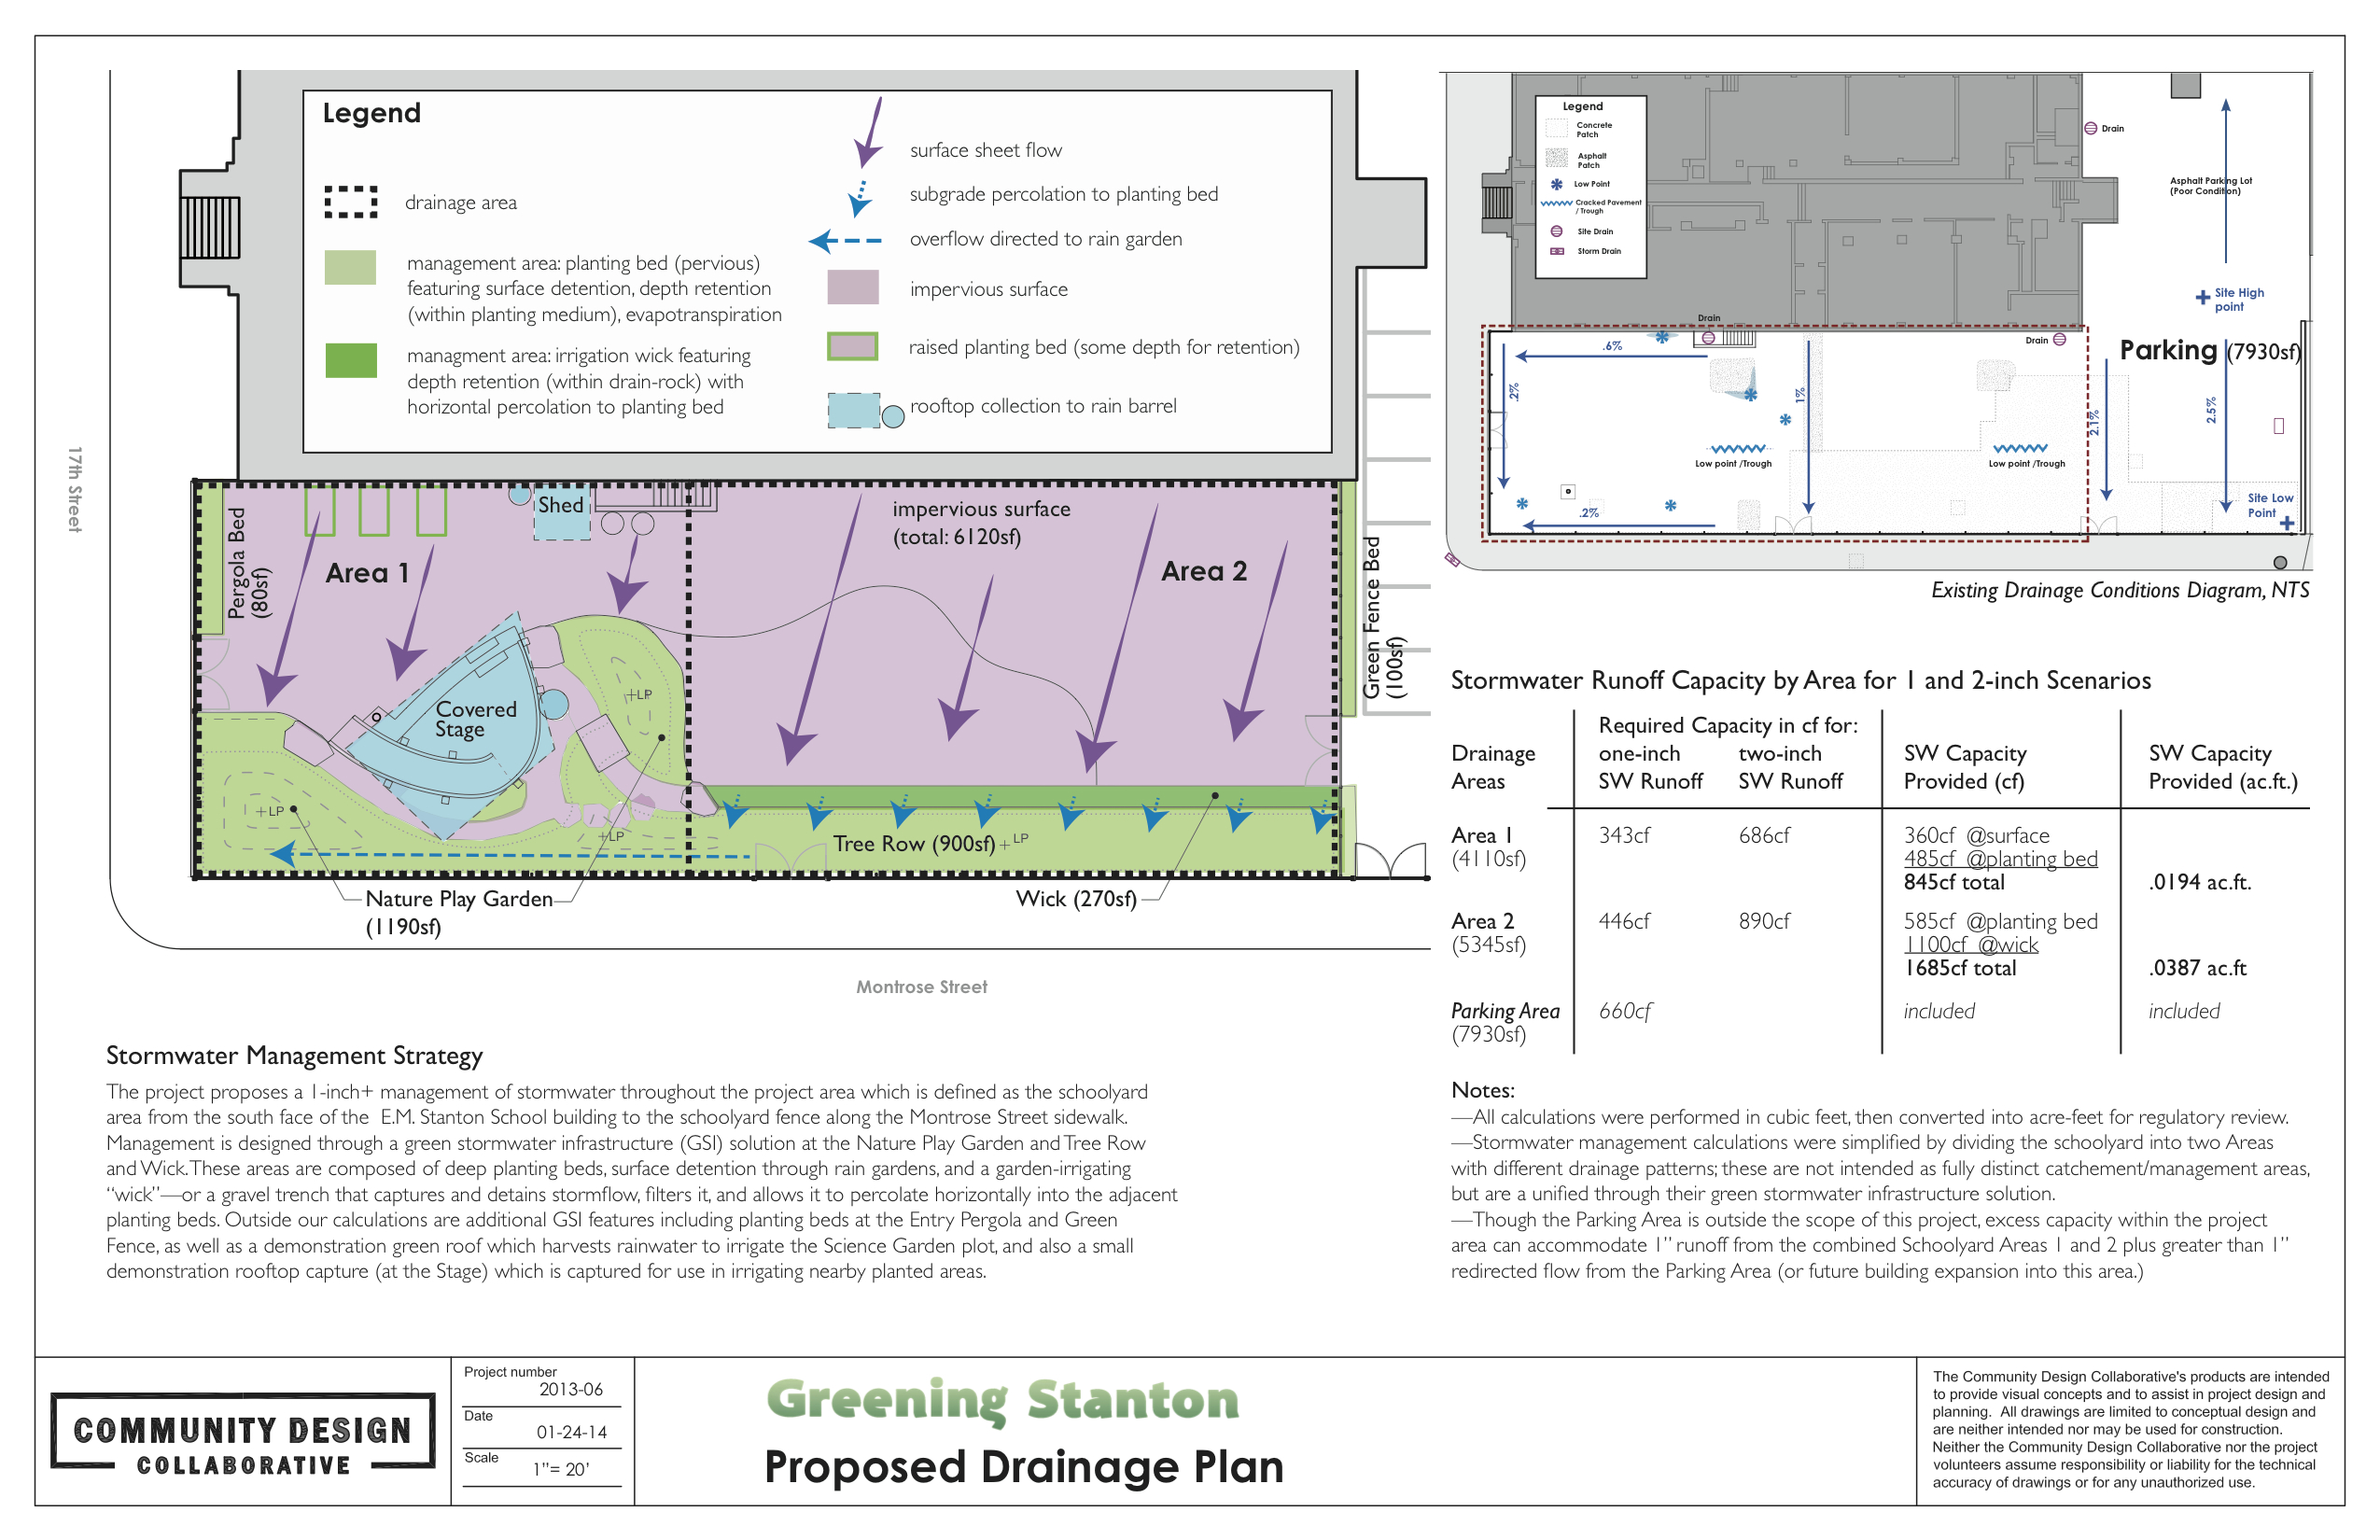 Greening Stanton stormwater management plan, Courtesy of the Community Design Collaborative